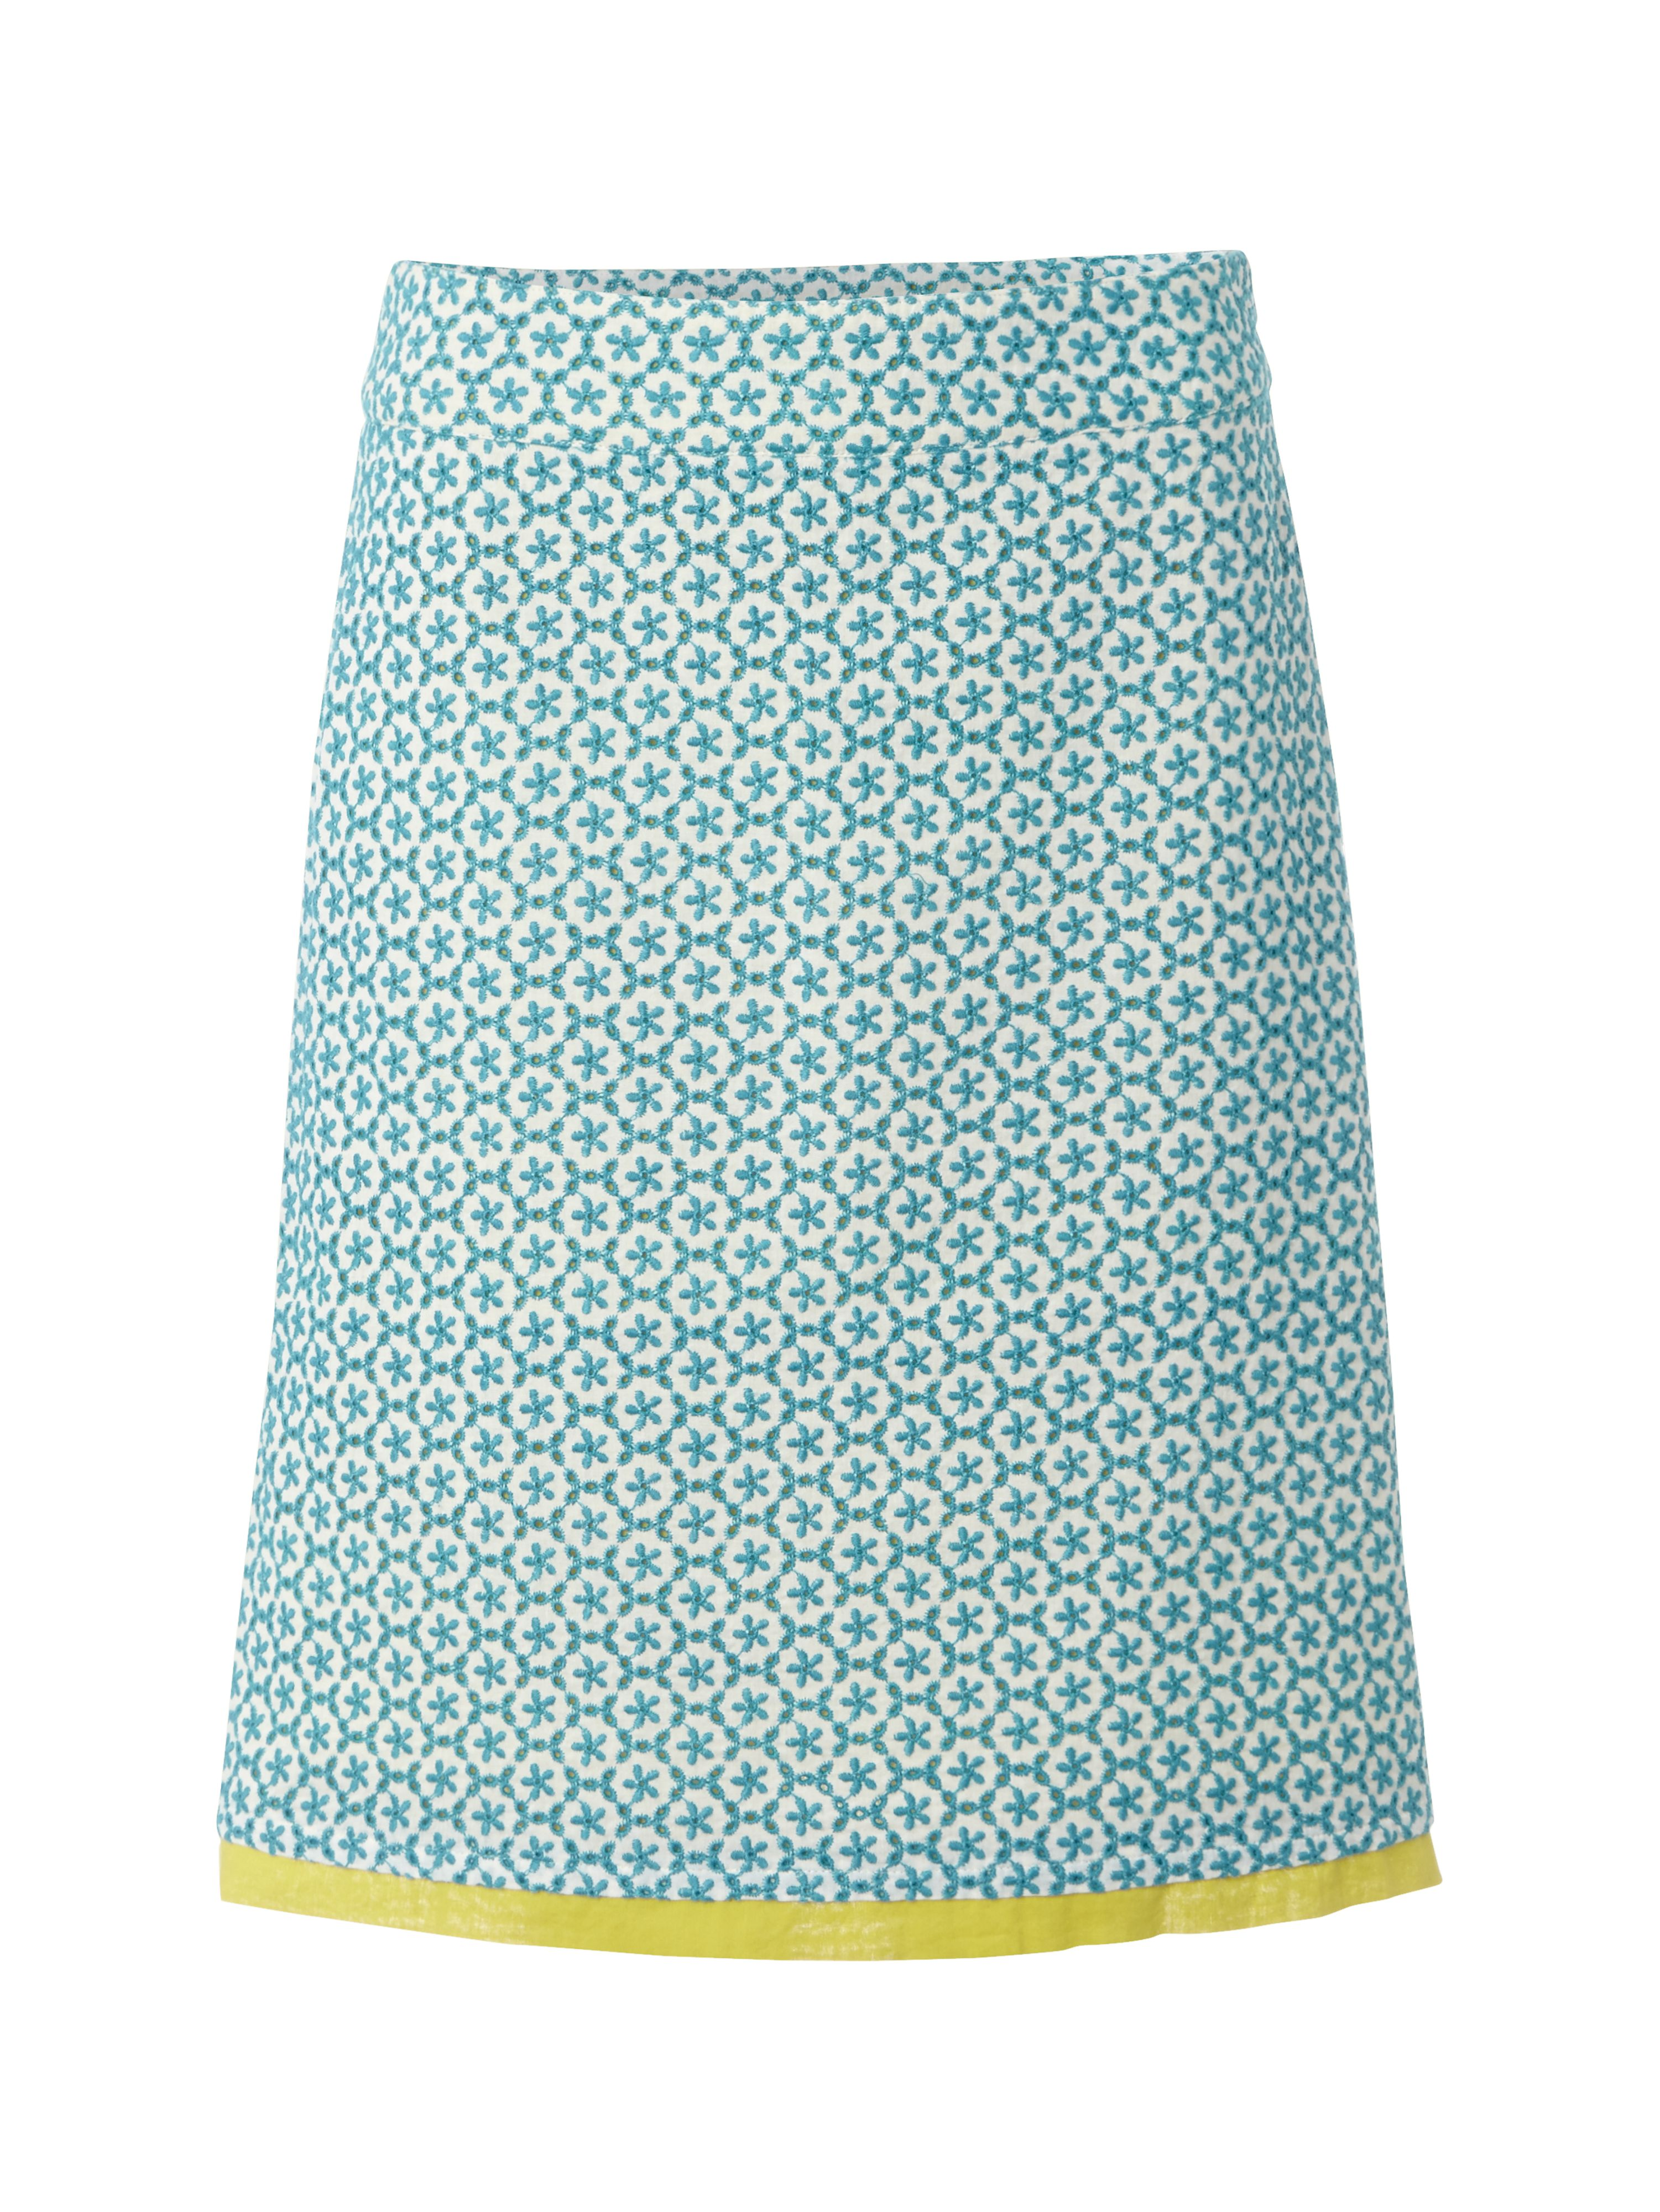 San pedro embroidered skirt